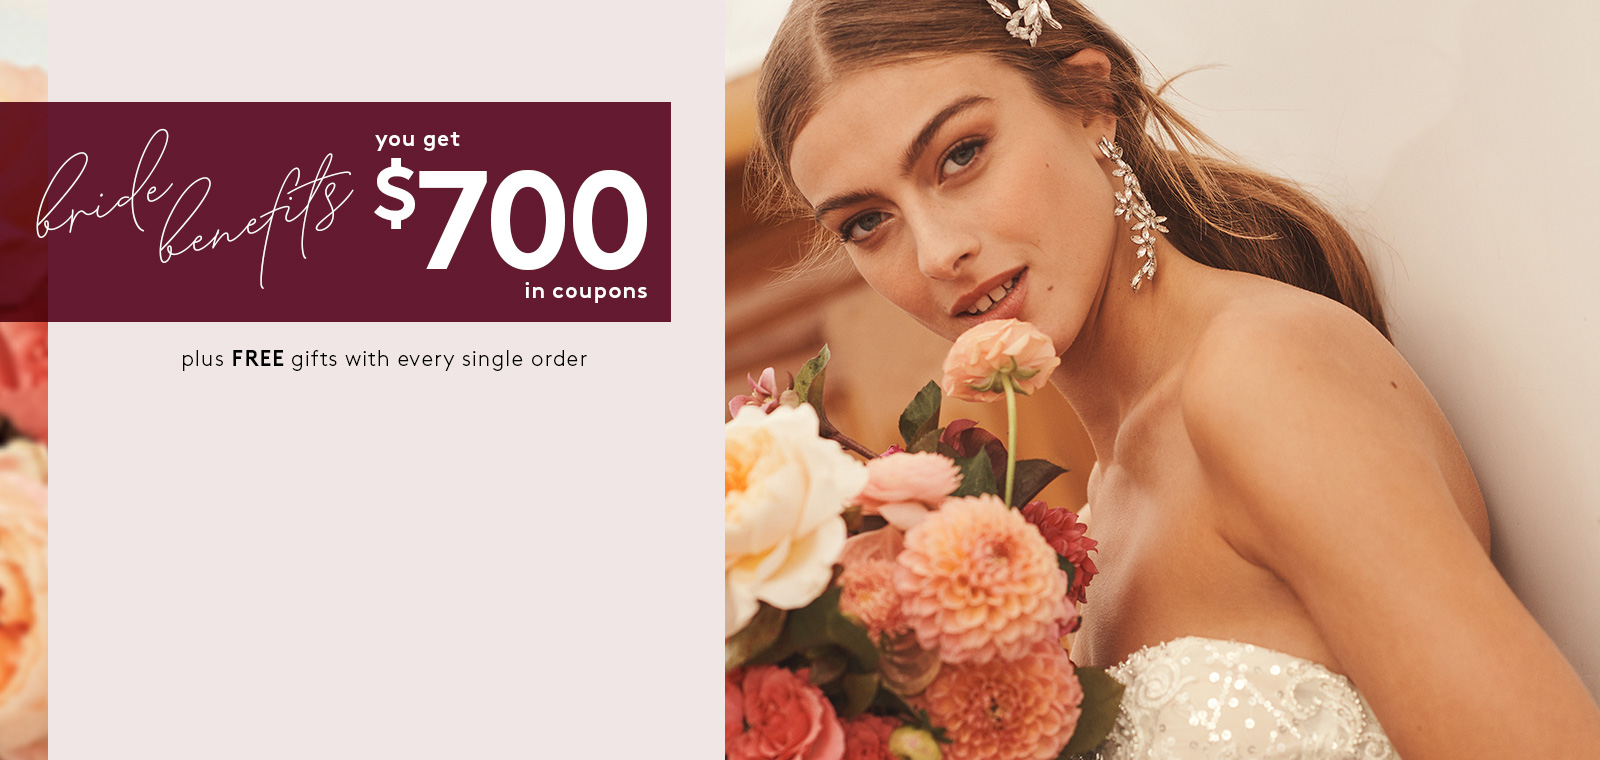 bride benefits - you get $700 in coupons | plus free gifts with every single order